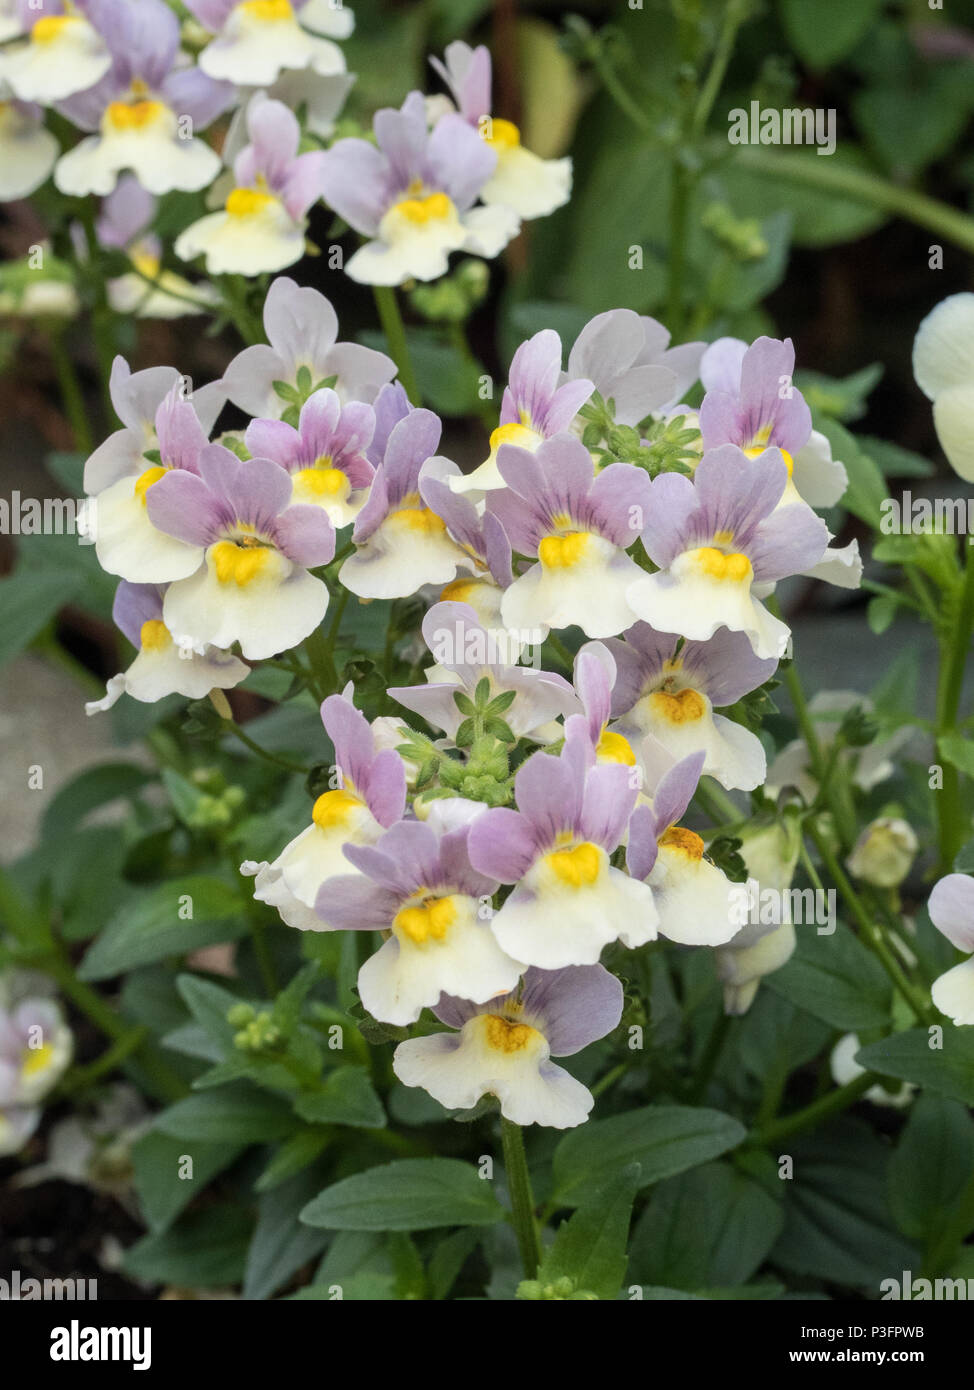 A group of the lavender and cream flowers of Nemesia Bicolor Stock Photo